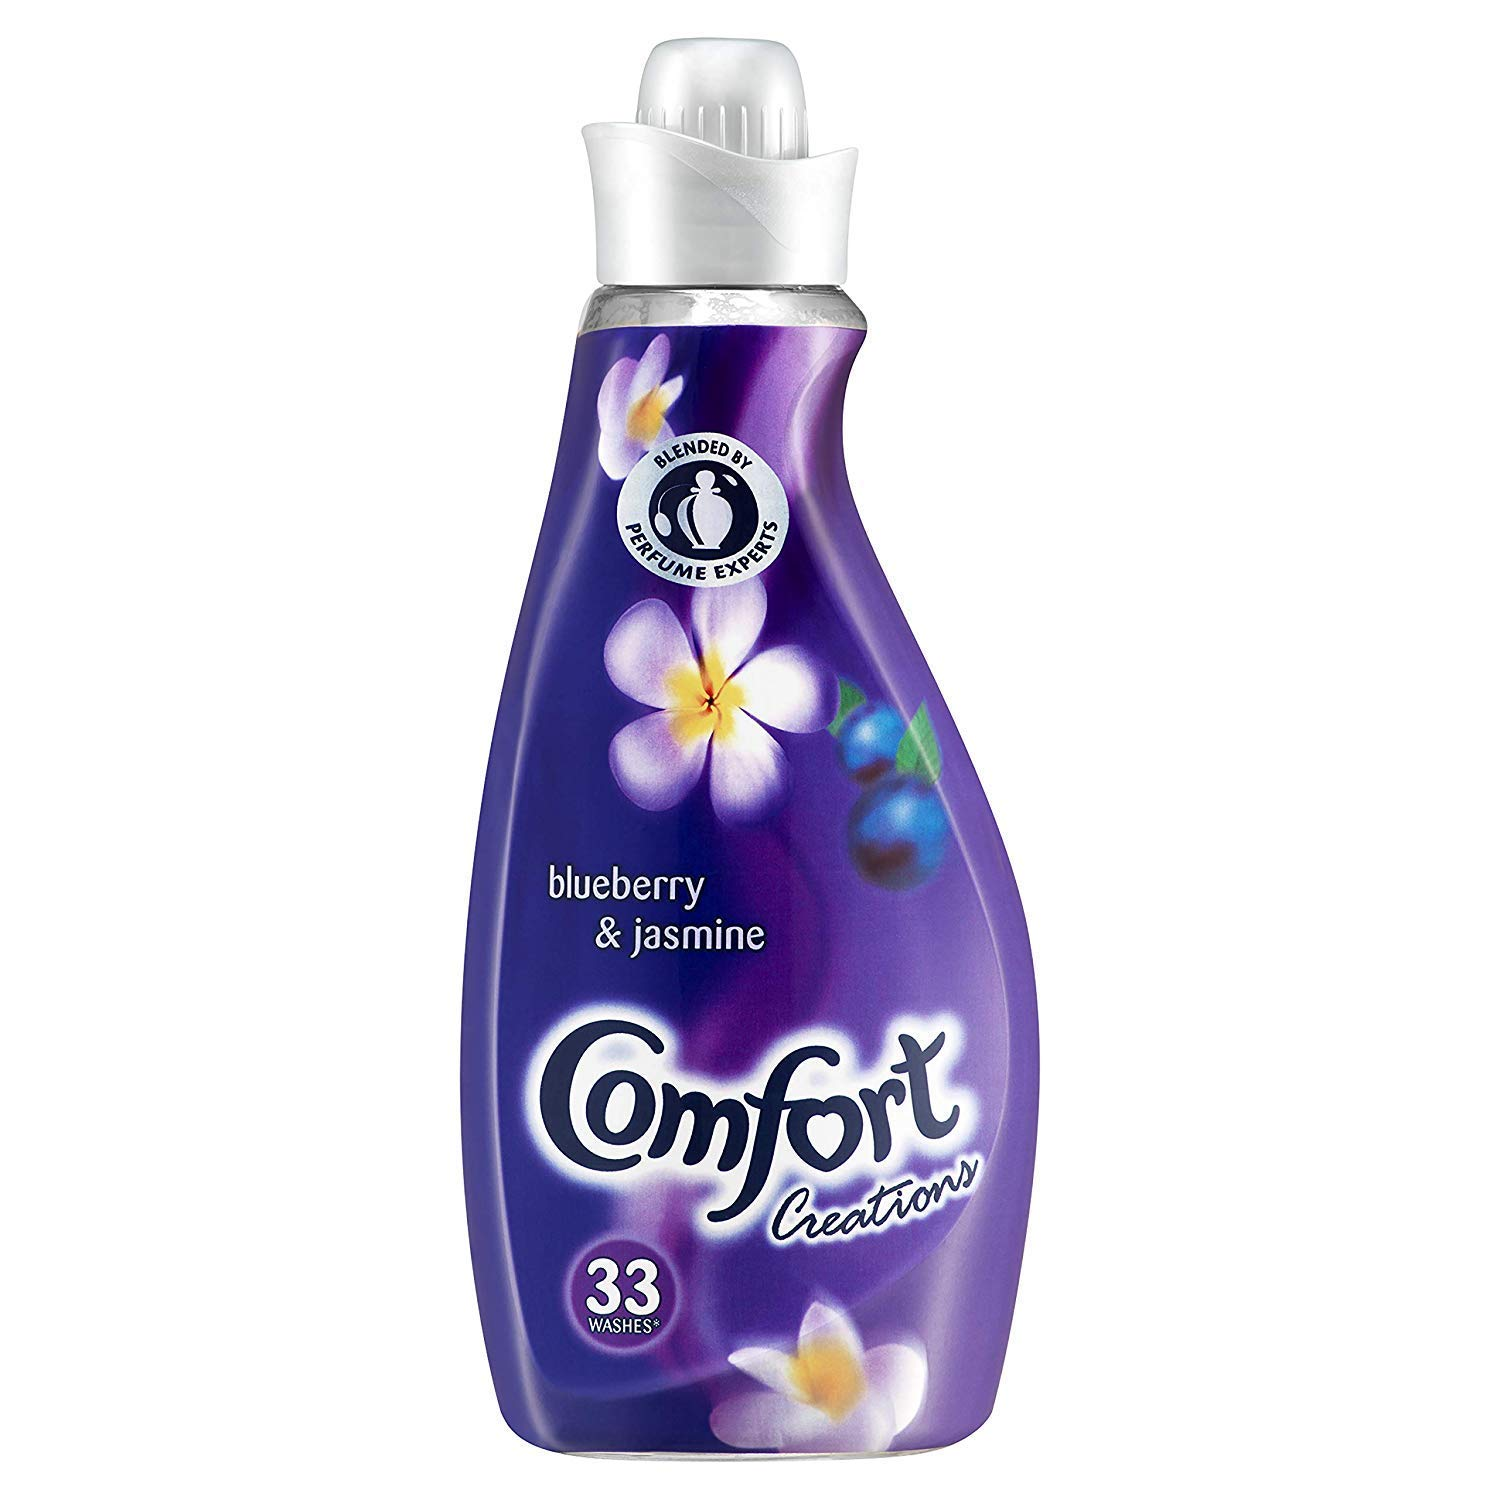 Comfort Creations Blueberry & Jasmine Fabric Conditioners (33w) 1.16L, Pack of 6